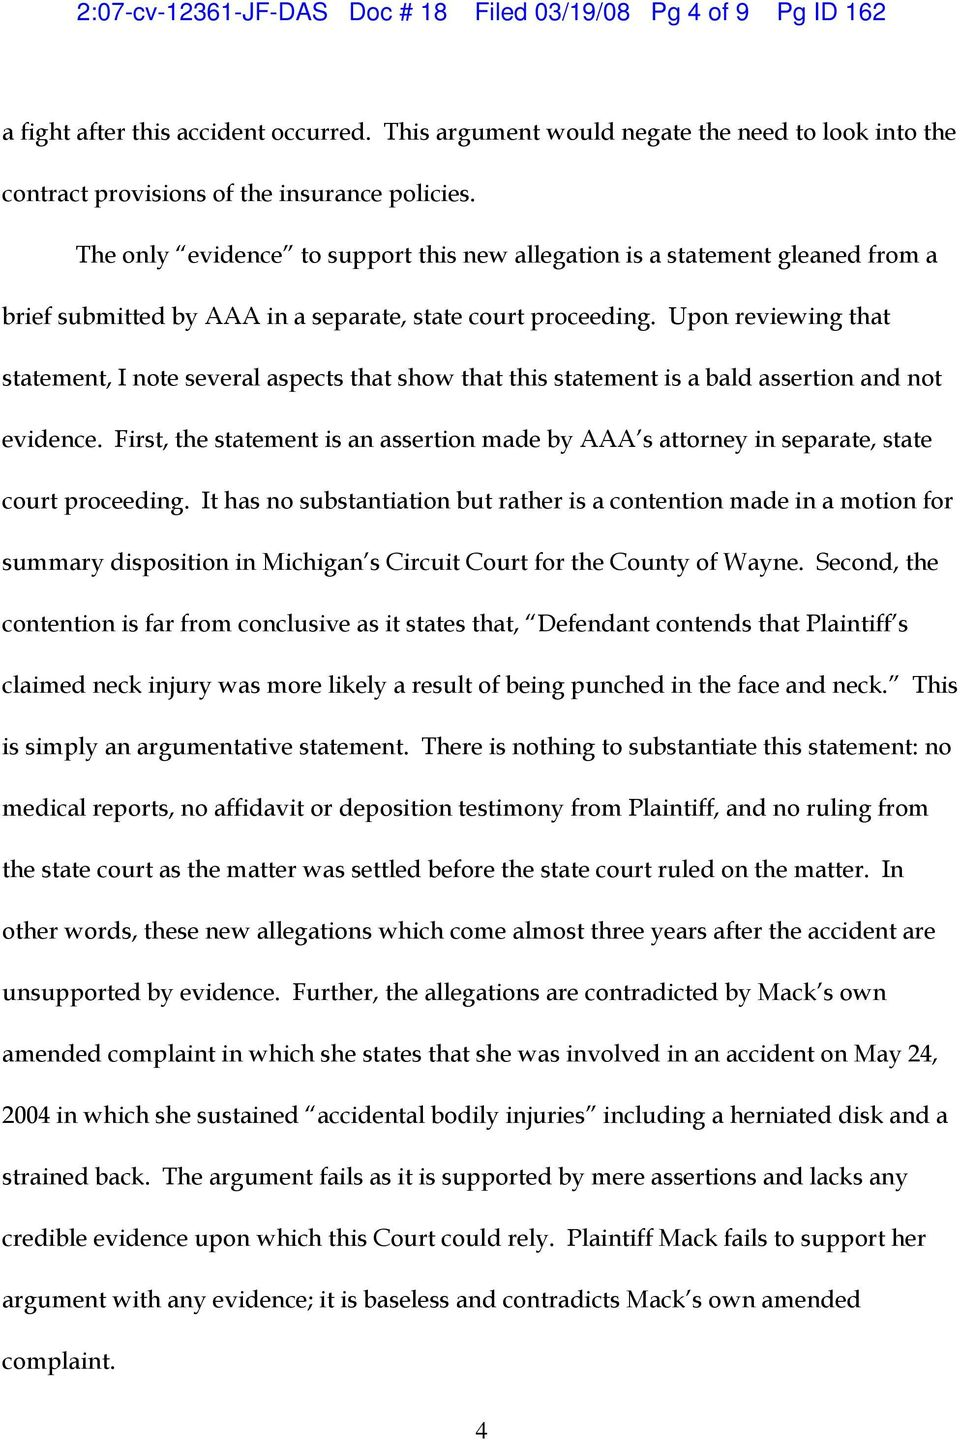 The only evidence to support this new allegation is a statement gleaned from a brief submitted by AAA in a separate, state court proceeding.